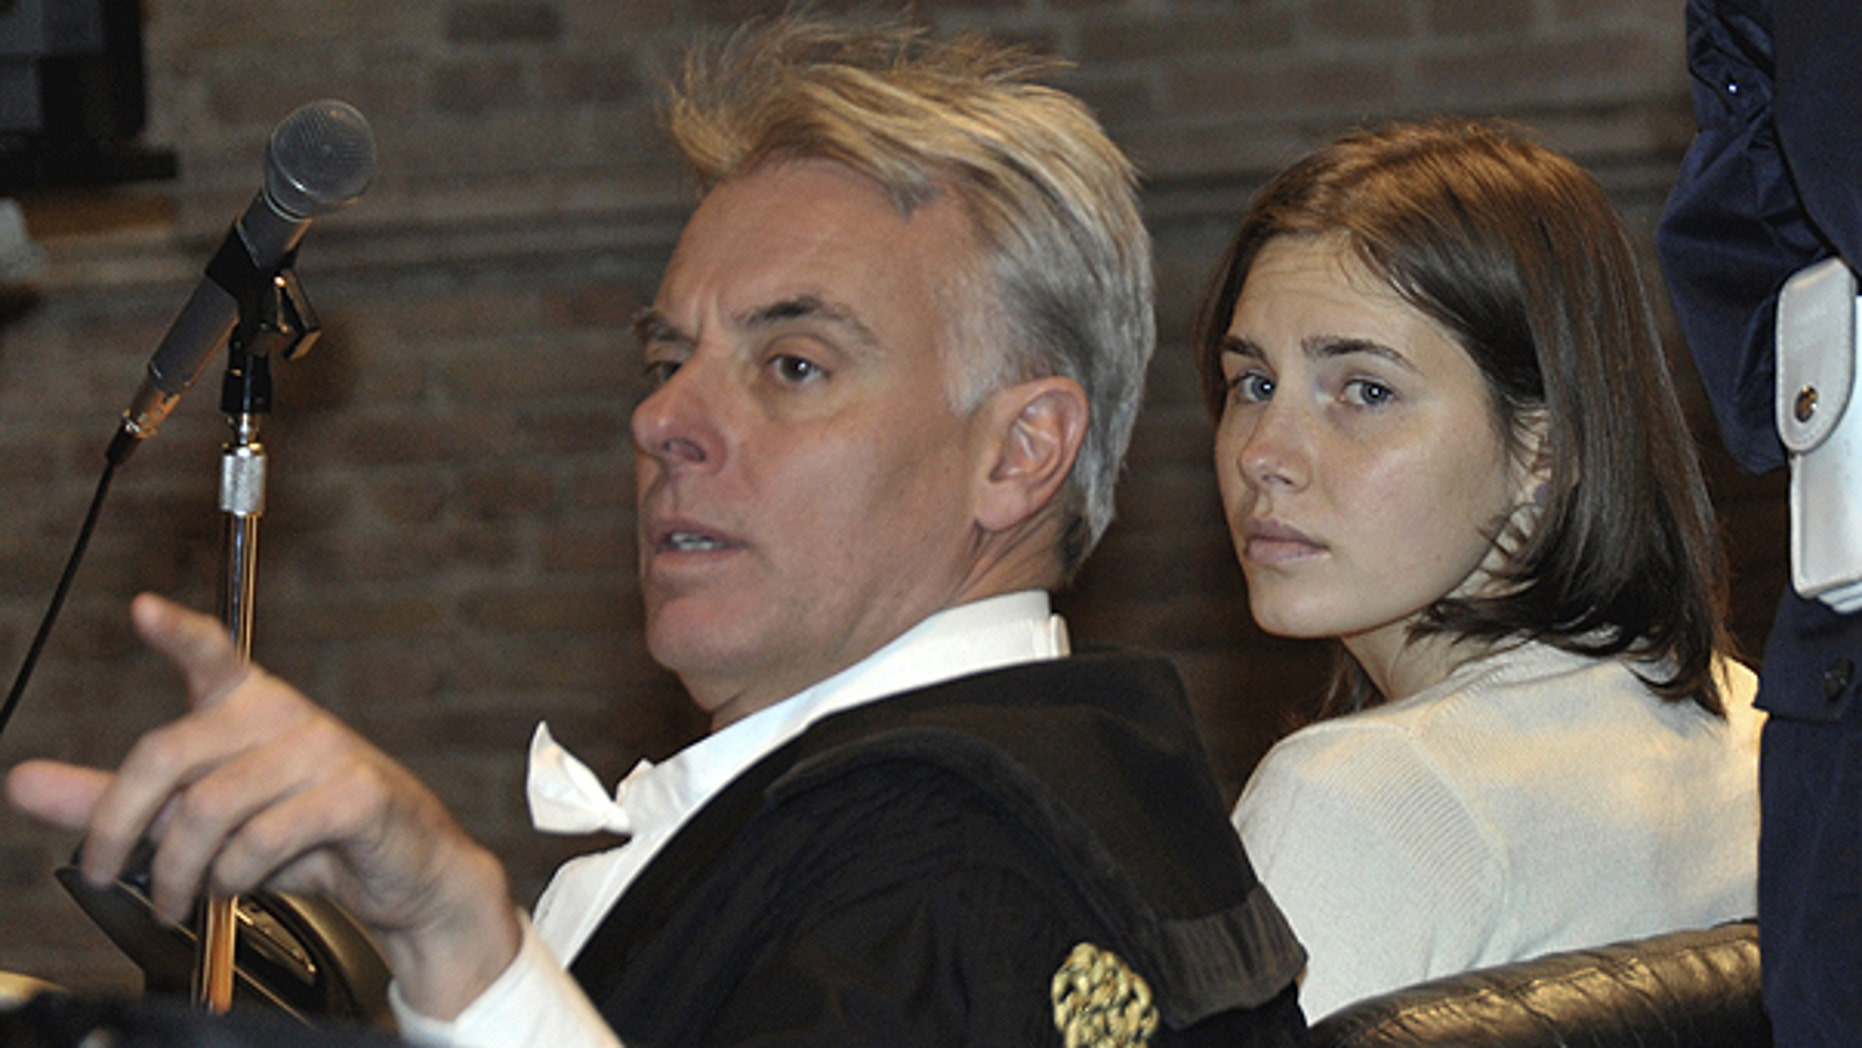 Jan. 22: Convicted U.S. student Amanda Knox, right, and her lawyer Carlo Dalla Vedova look on as they attend a hearing in her appeal trial, at Perugia's courthouse, Italy.